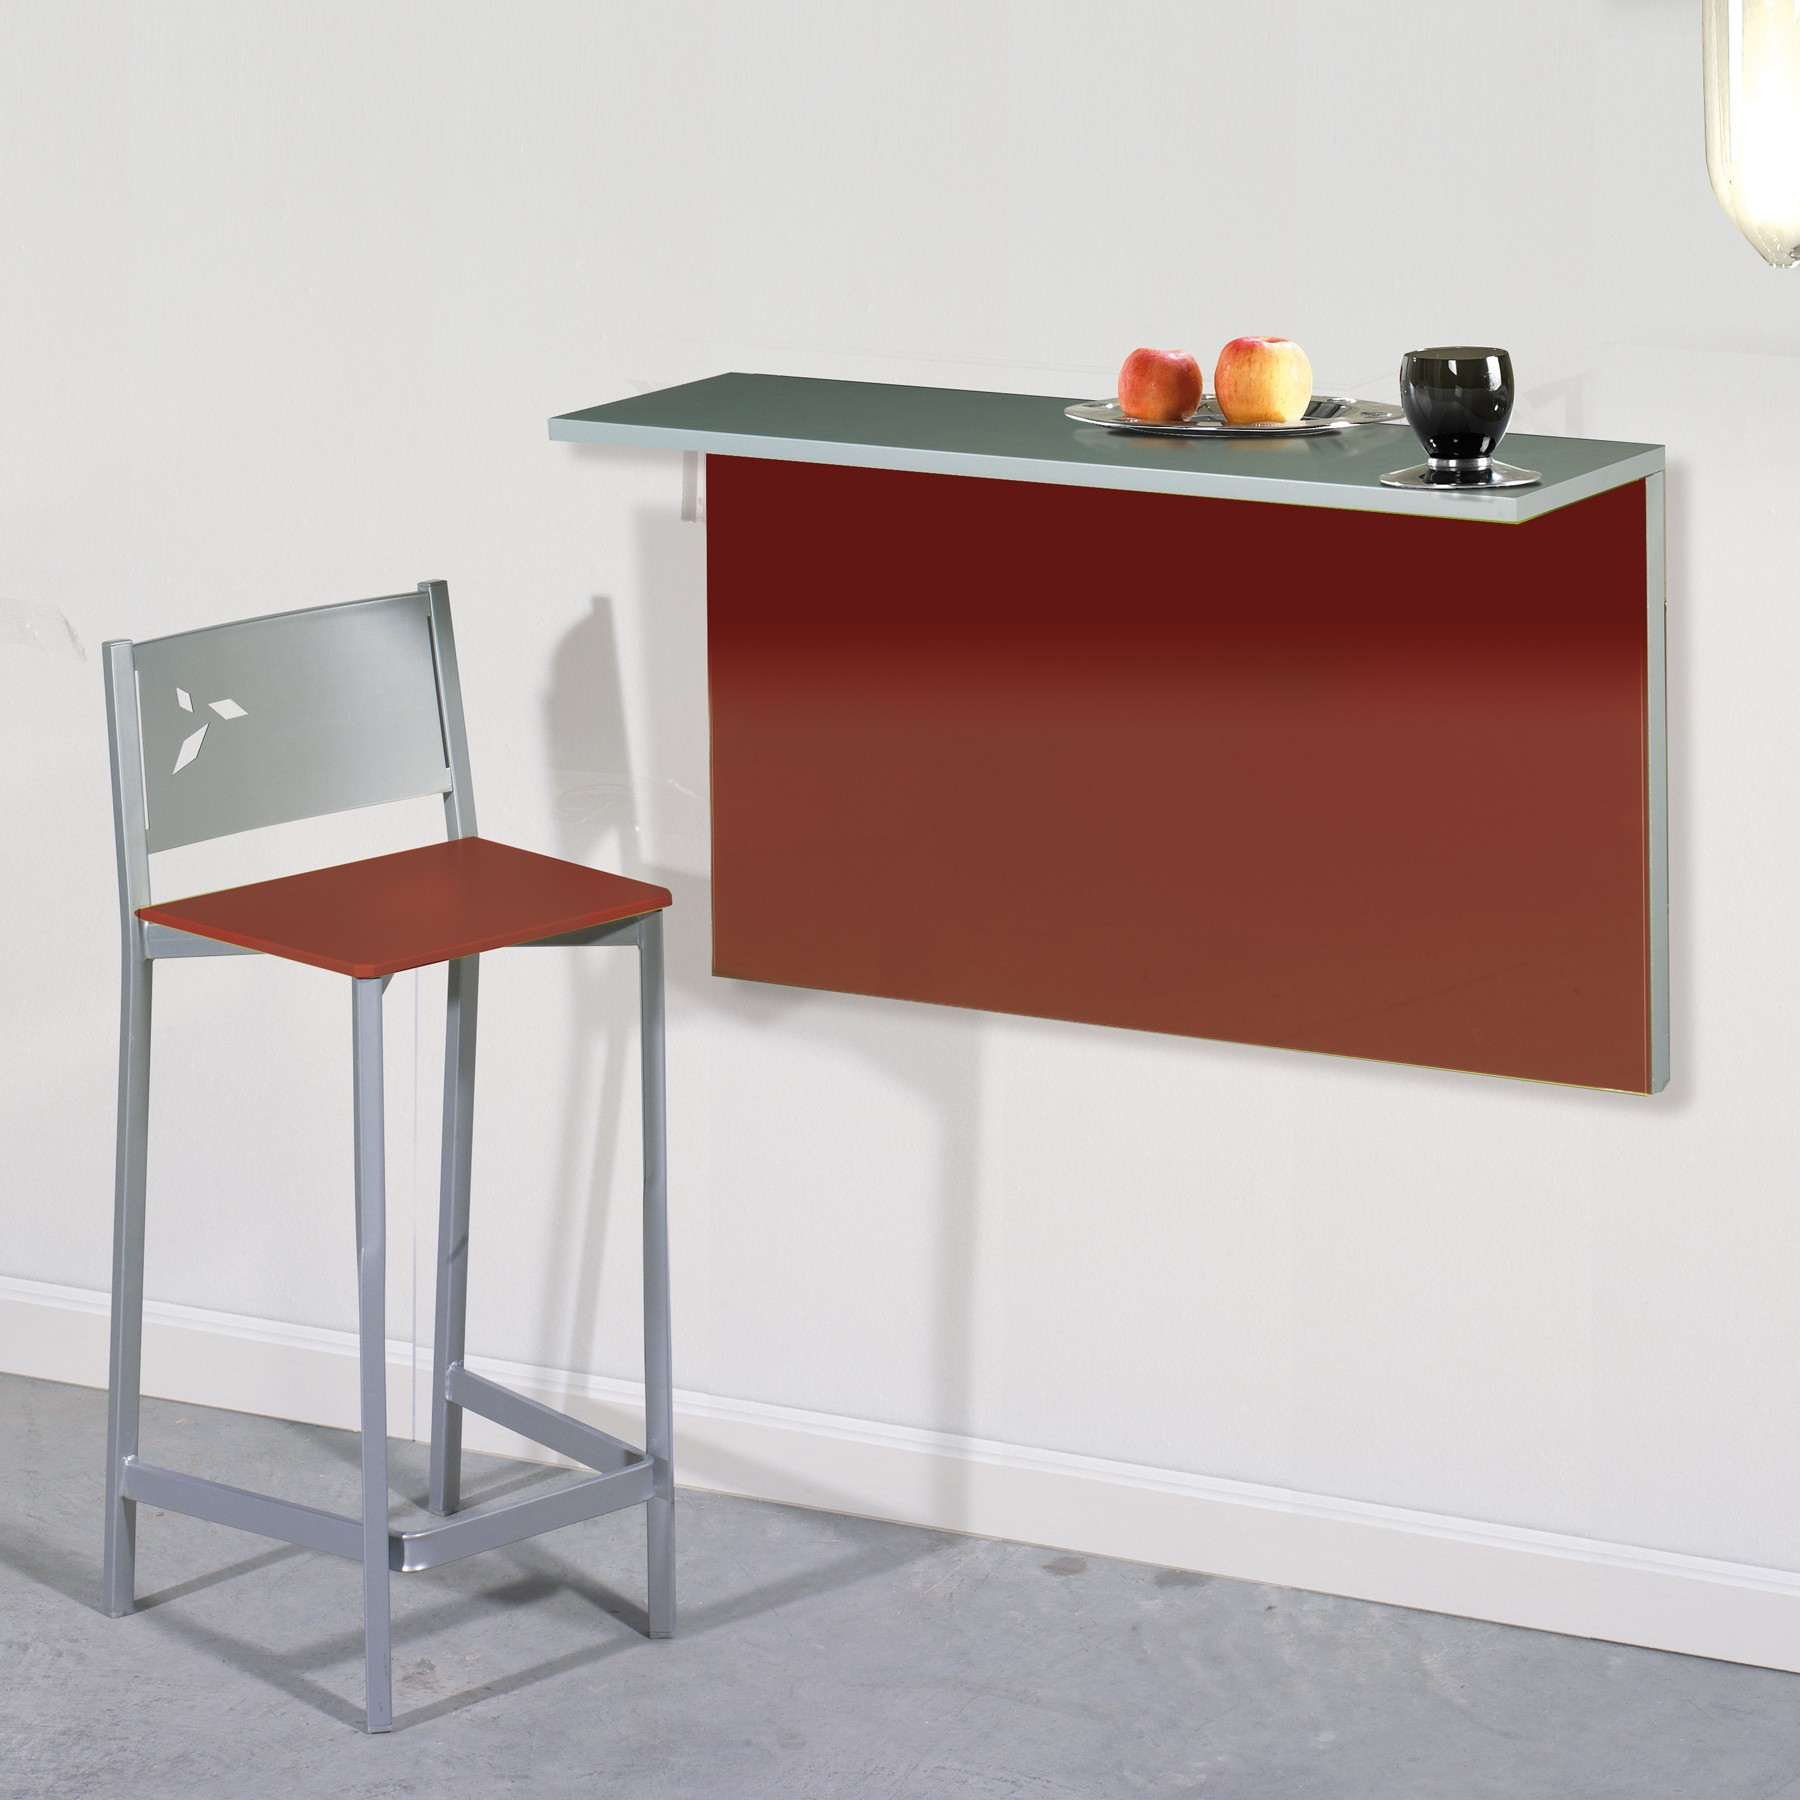 mesa de cocina plegable de pared con 2 posiciones dkg On mesa plegable pared cocina